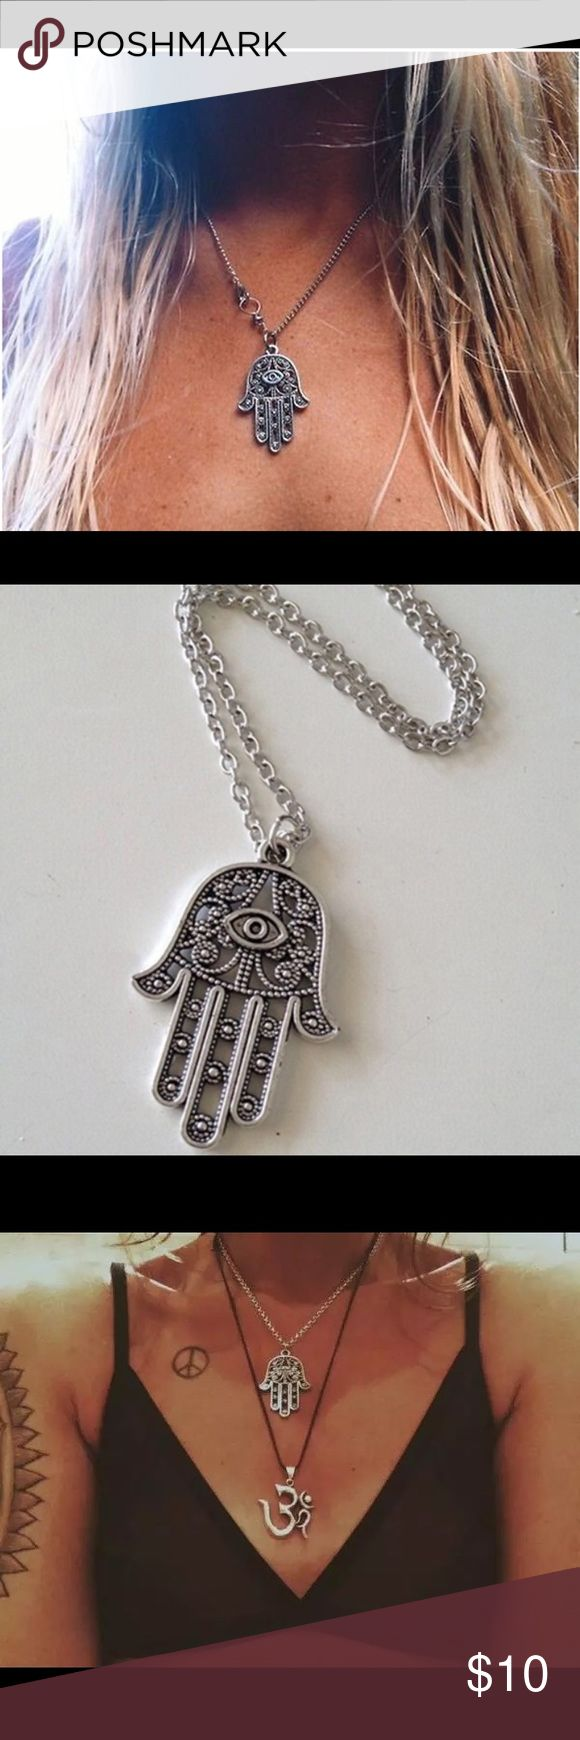 💕 Hamsa Hand Pendant Necklace Lucky Fatima Hand pendant necklace  A perfect accessory * Good Luck Protection Hamsa Symbol Fatima Hand Evil Eye Pendant Chain Necklace  Material: Alloy Jewelry Necklaces